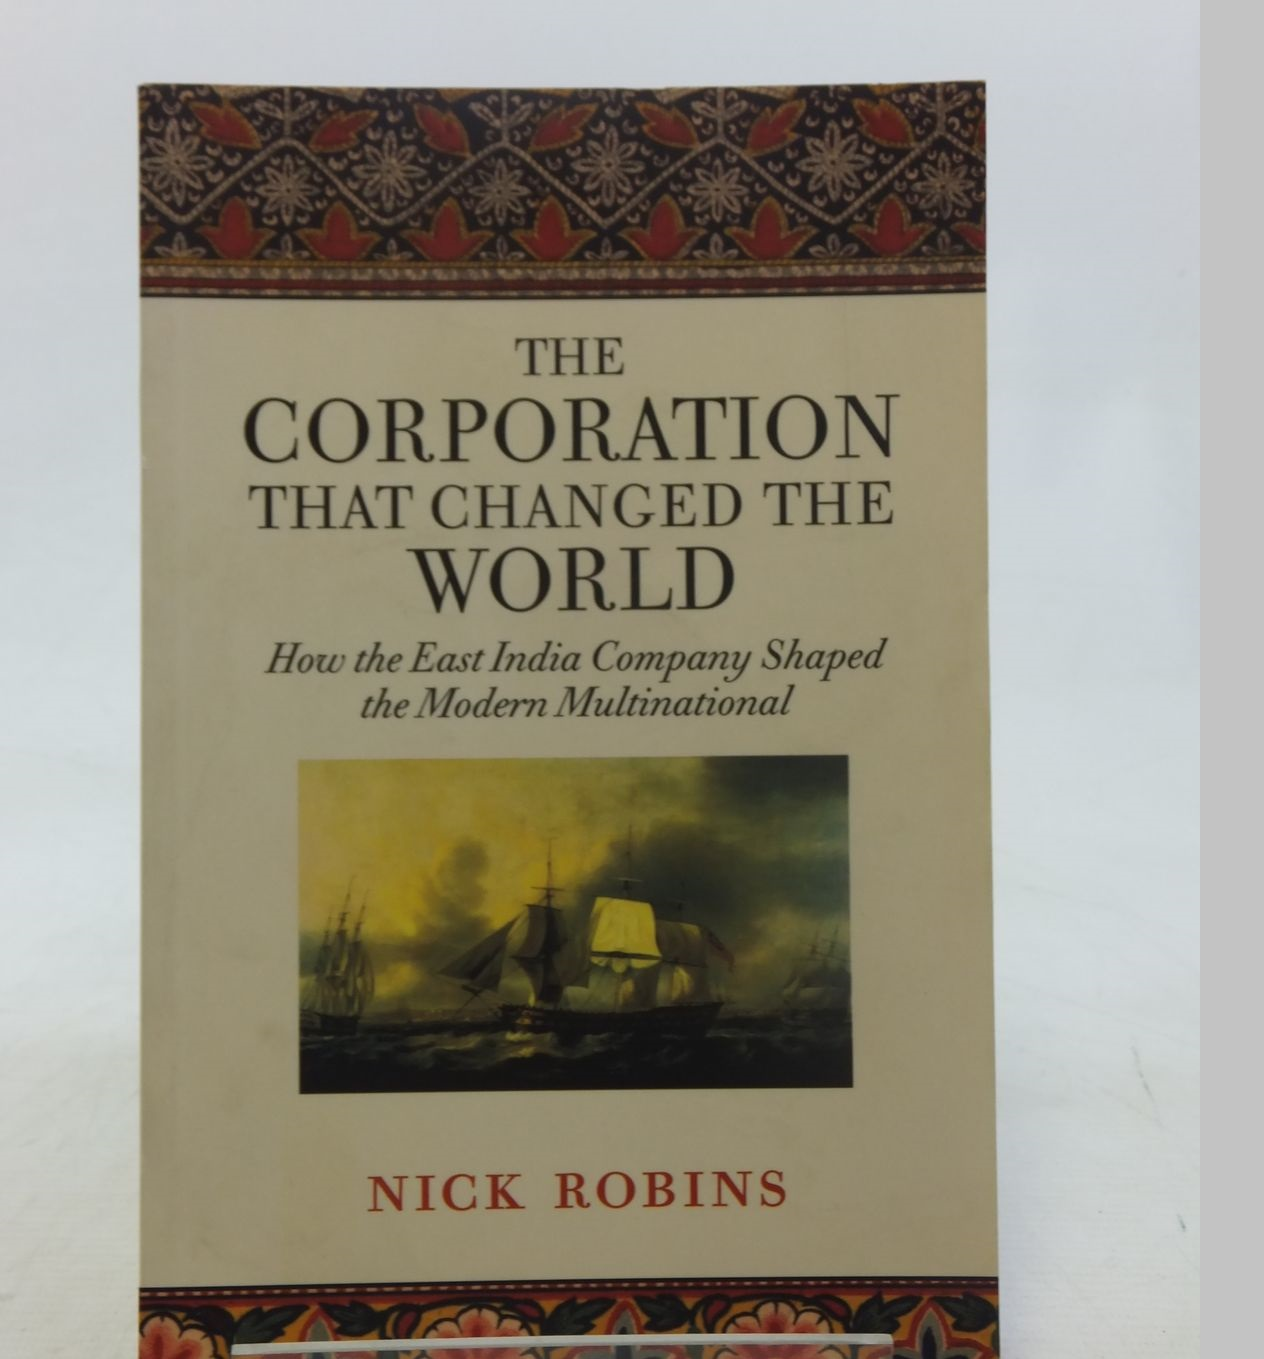 Book Review: The Corporation that Changed the World by Nick Robins